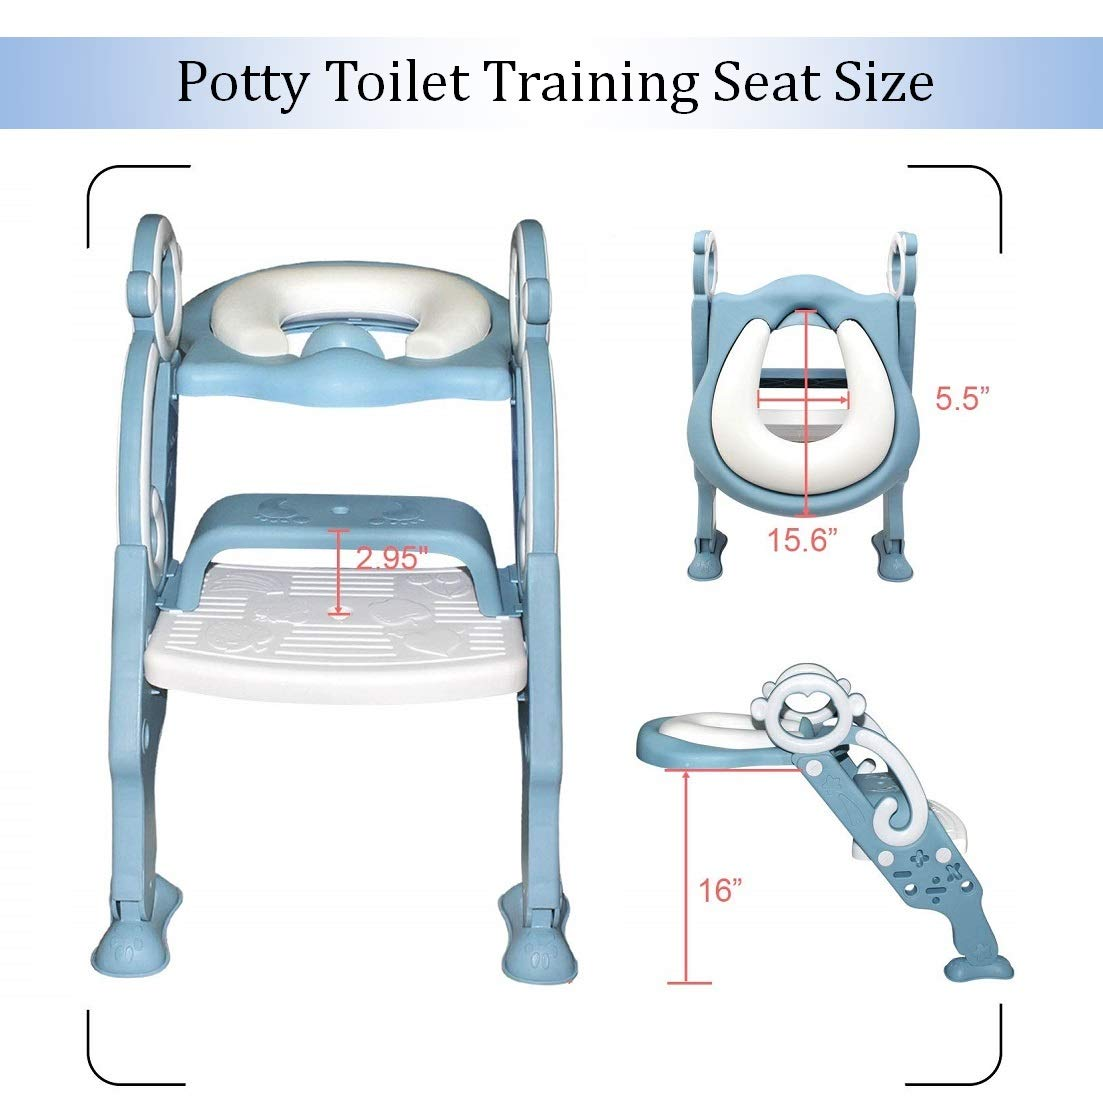 Potty Training Seat with Step Stool Ladder for Kids Children Toddler Toilet Training Seat Chair with Soft Cushion Safe Handles and Non-Slip Wide Steps Sturdy for Boys and Girls (Blue White) by DuDuEase